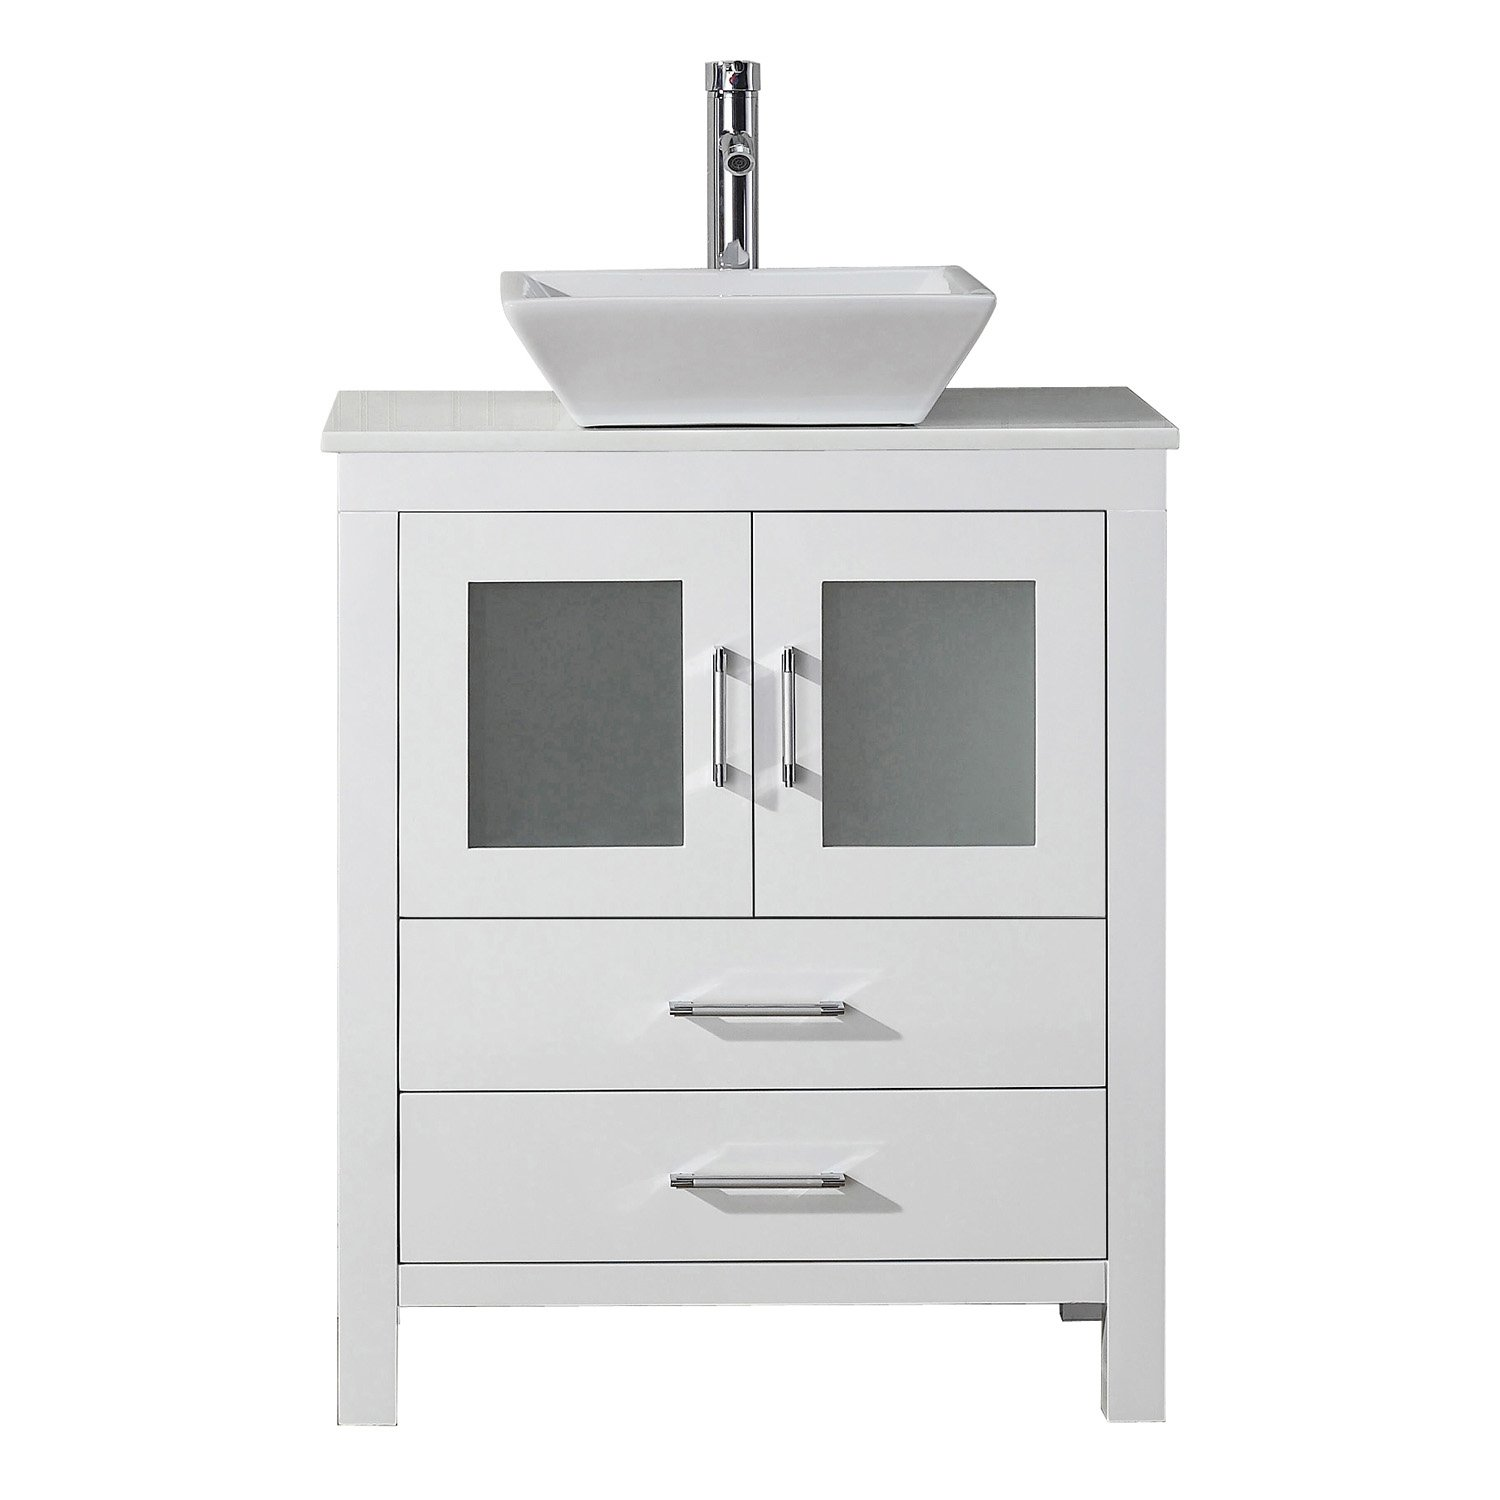 Virtu USA KS-70028-S-WH-001 Dior 28'' single Bathroom Vanity with Engineered Stone Top and Square Sink with Brushed Nickel Faucet and Mirror, White